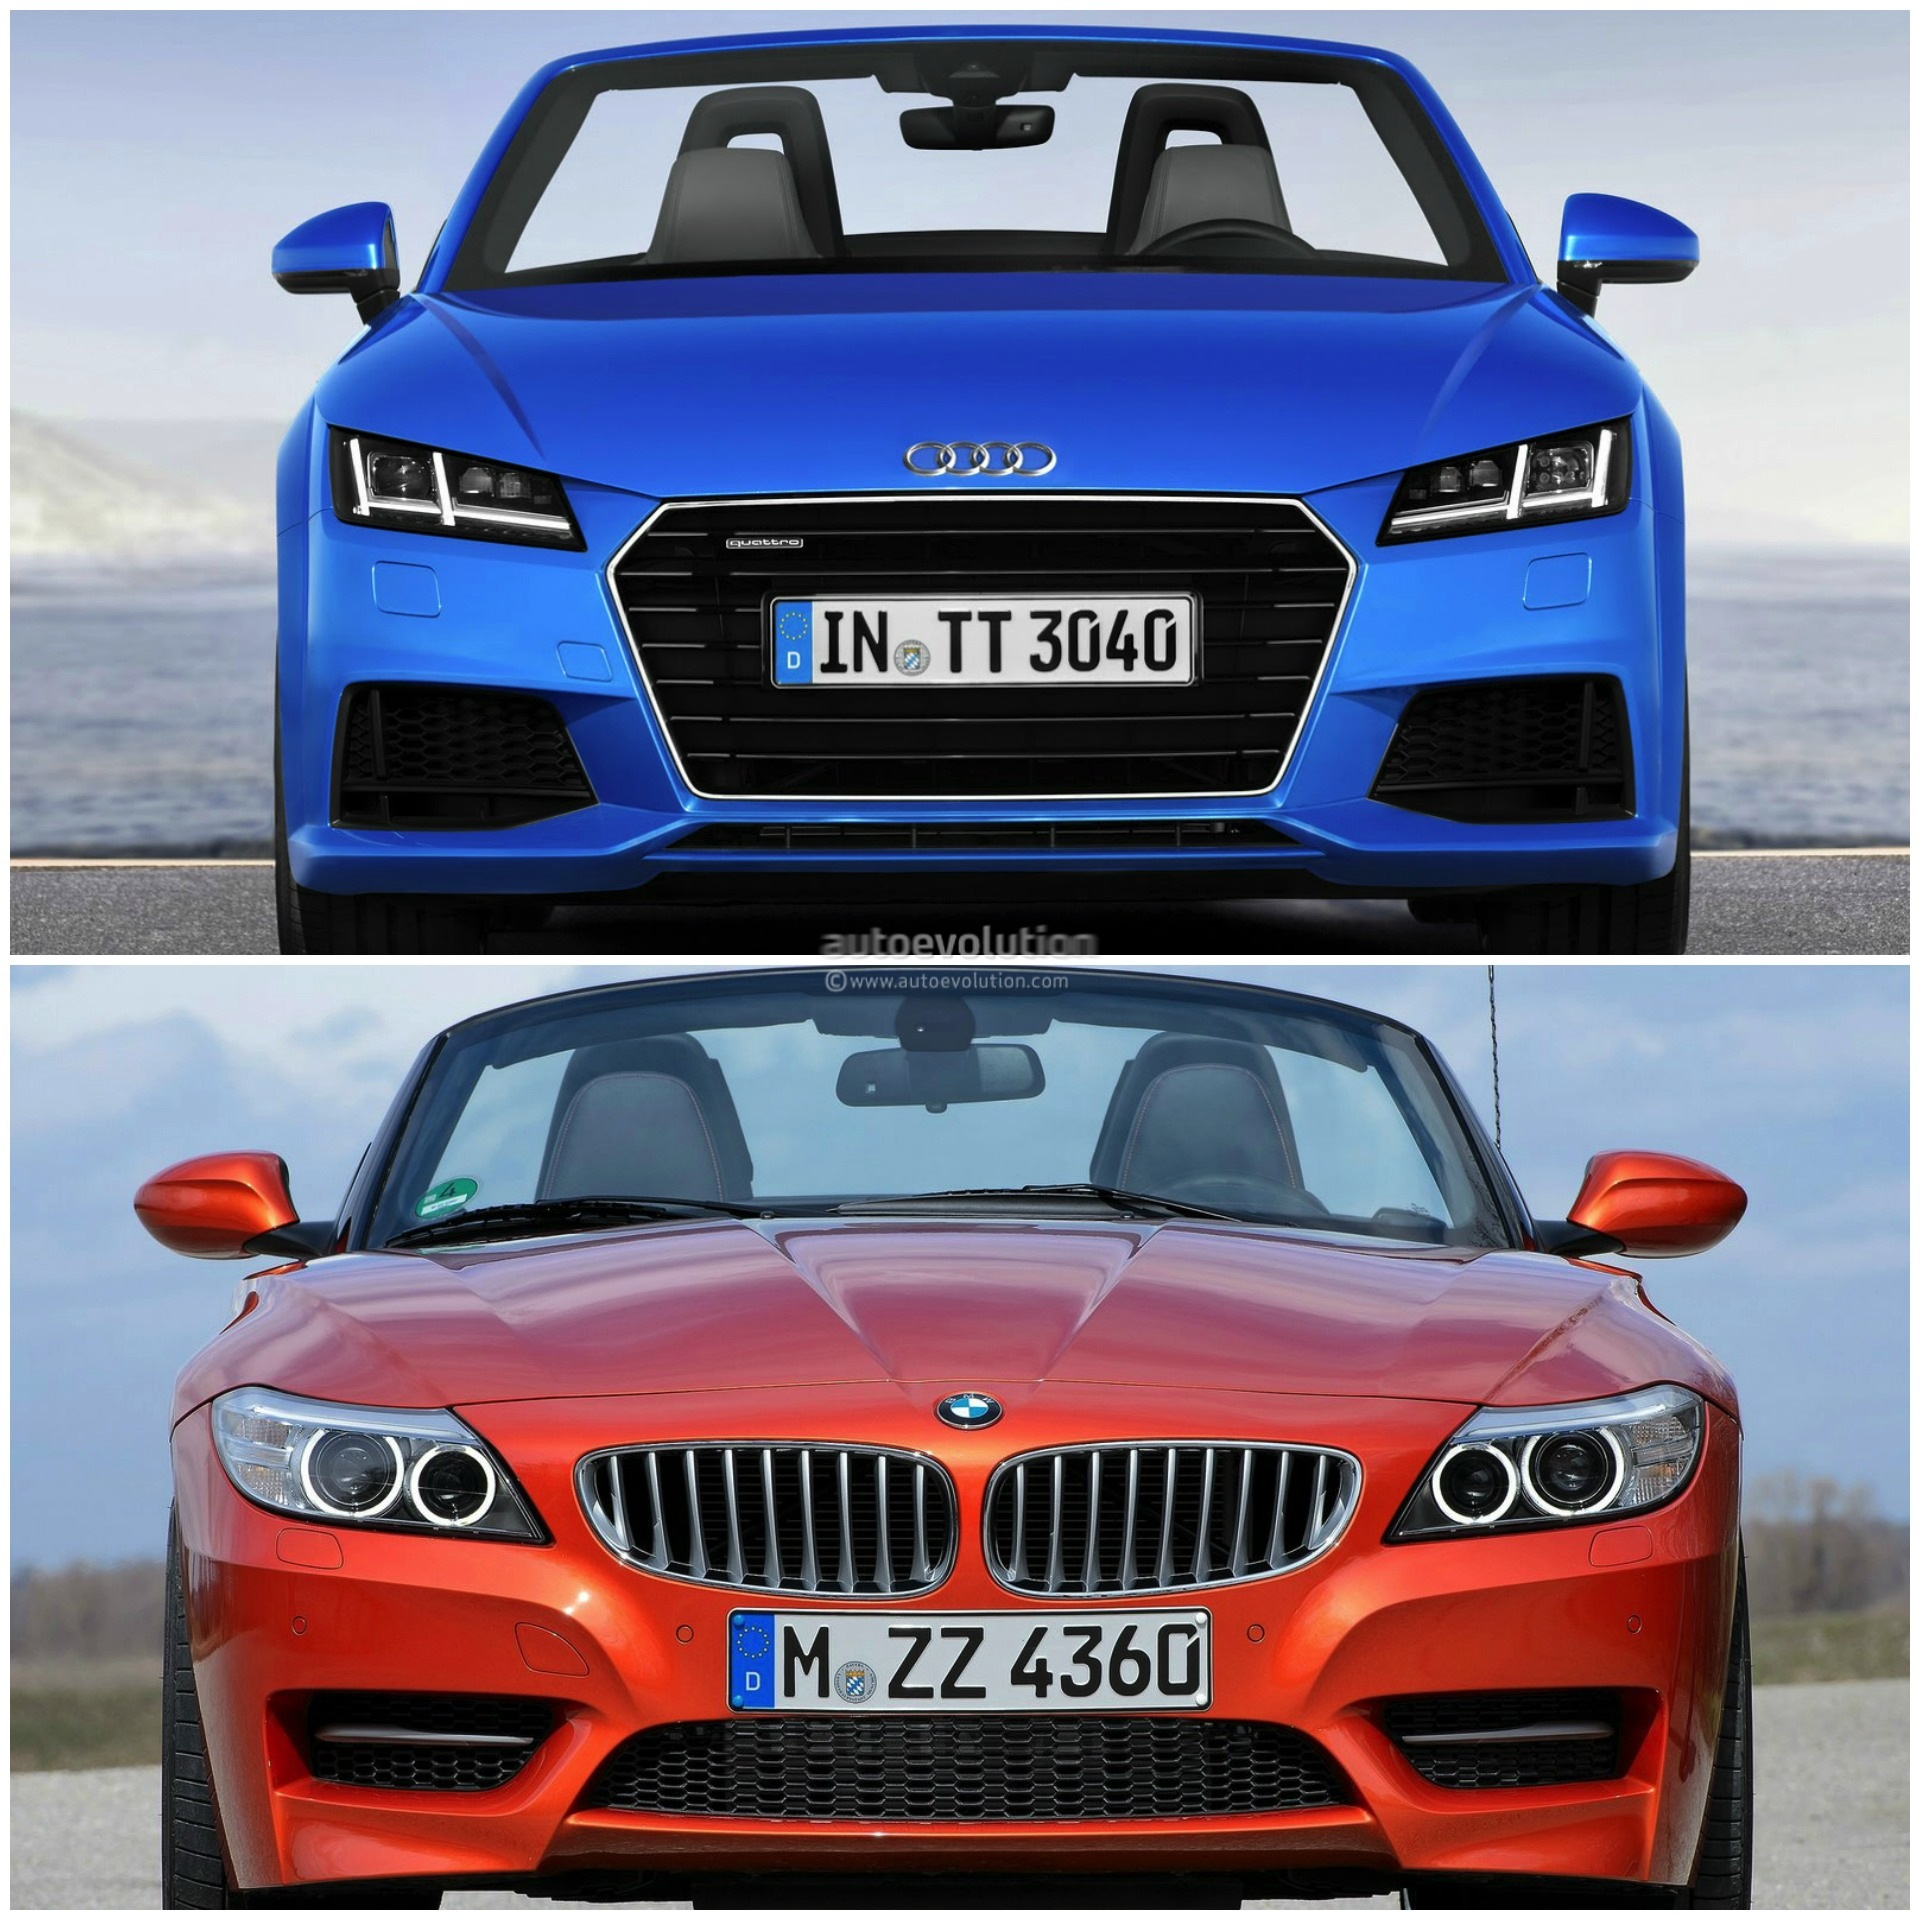 Bmw Z4 Reviews: 2015 Audi TT Roadster Vs 2014 BMW Z4: Roadster Comparison